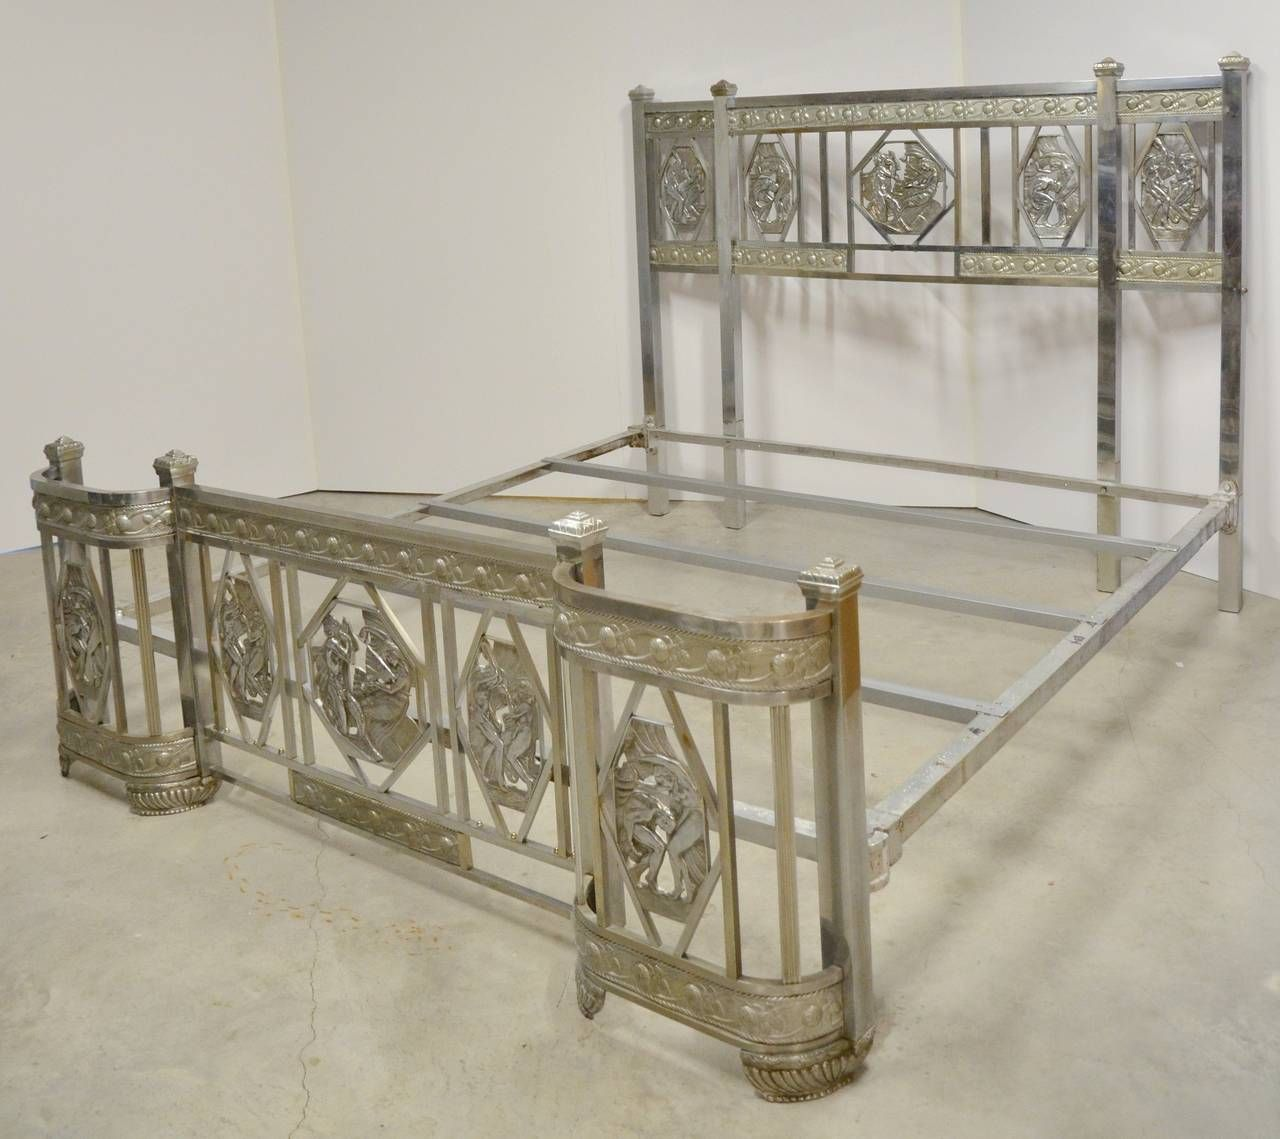 Art Deco Nickel Plated King Sized Bed 1930s Furniture Art Deco